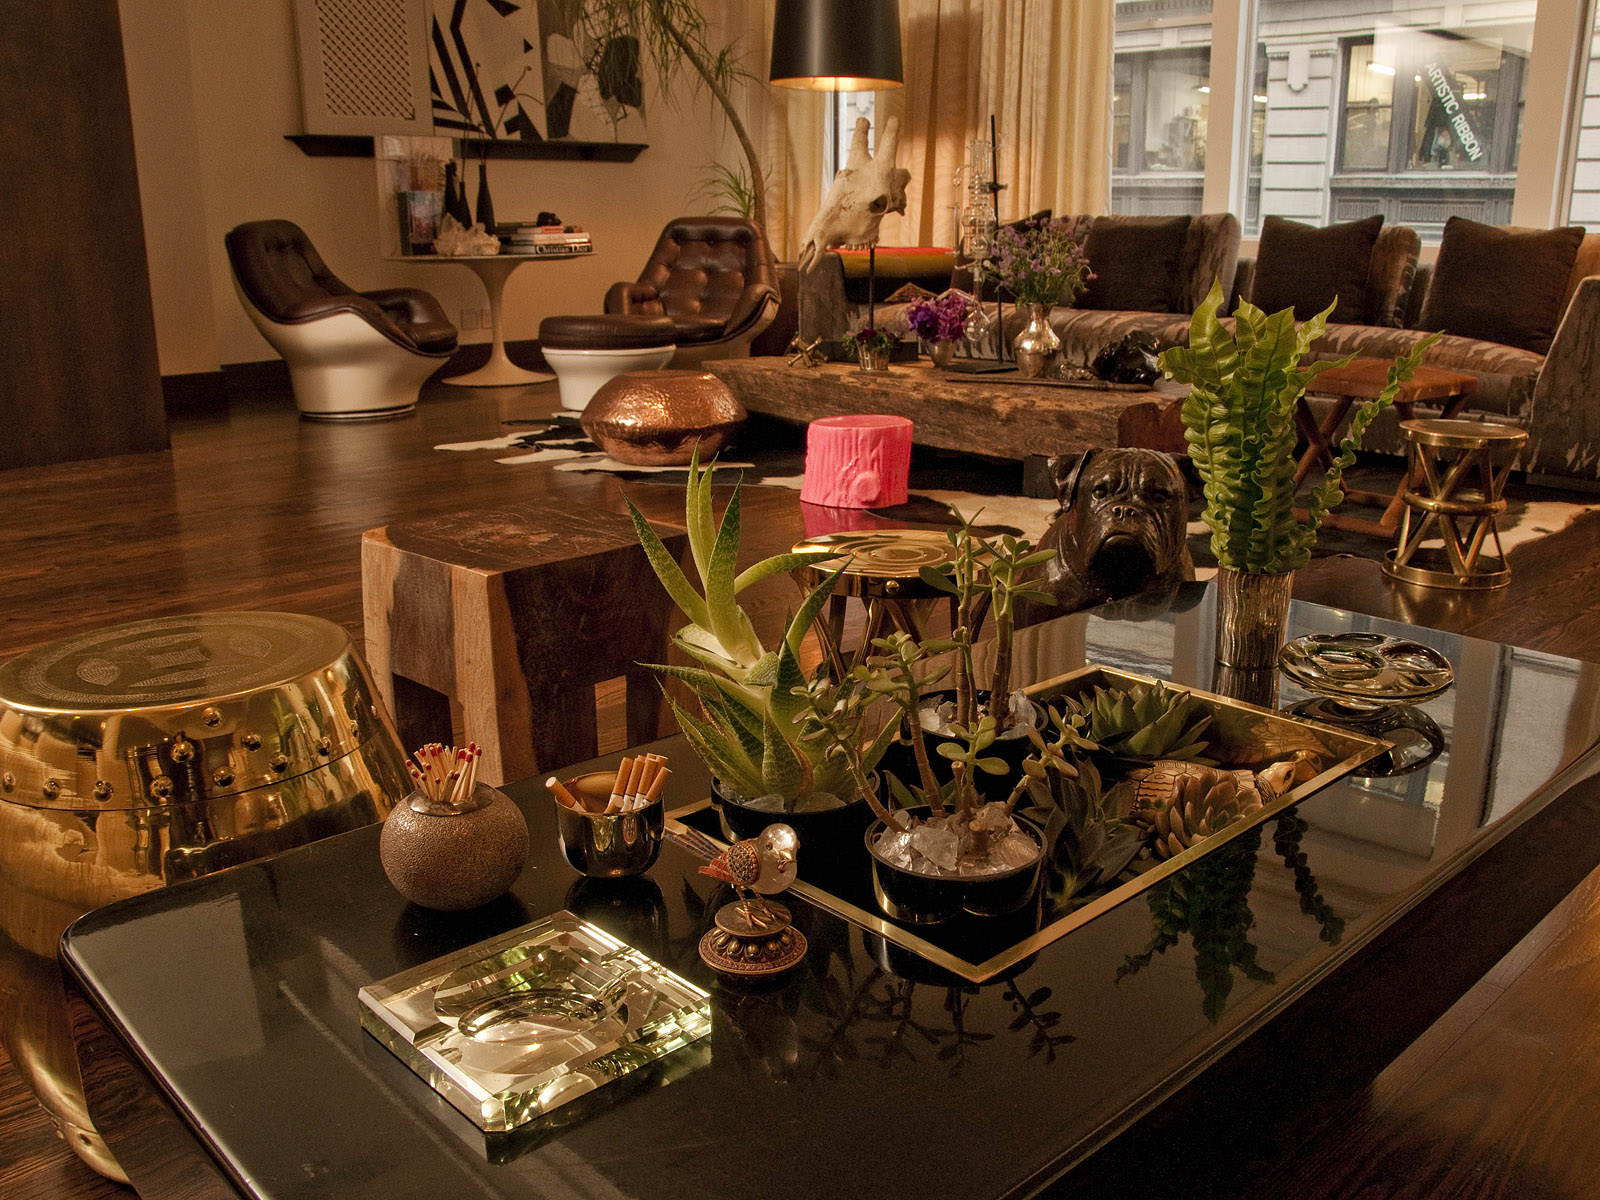 The north elevation spaces lauren santo domingo 39 s for Living room center table decoration ideas